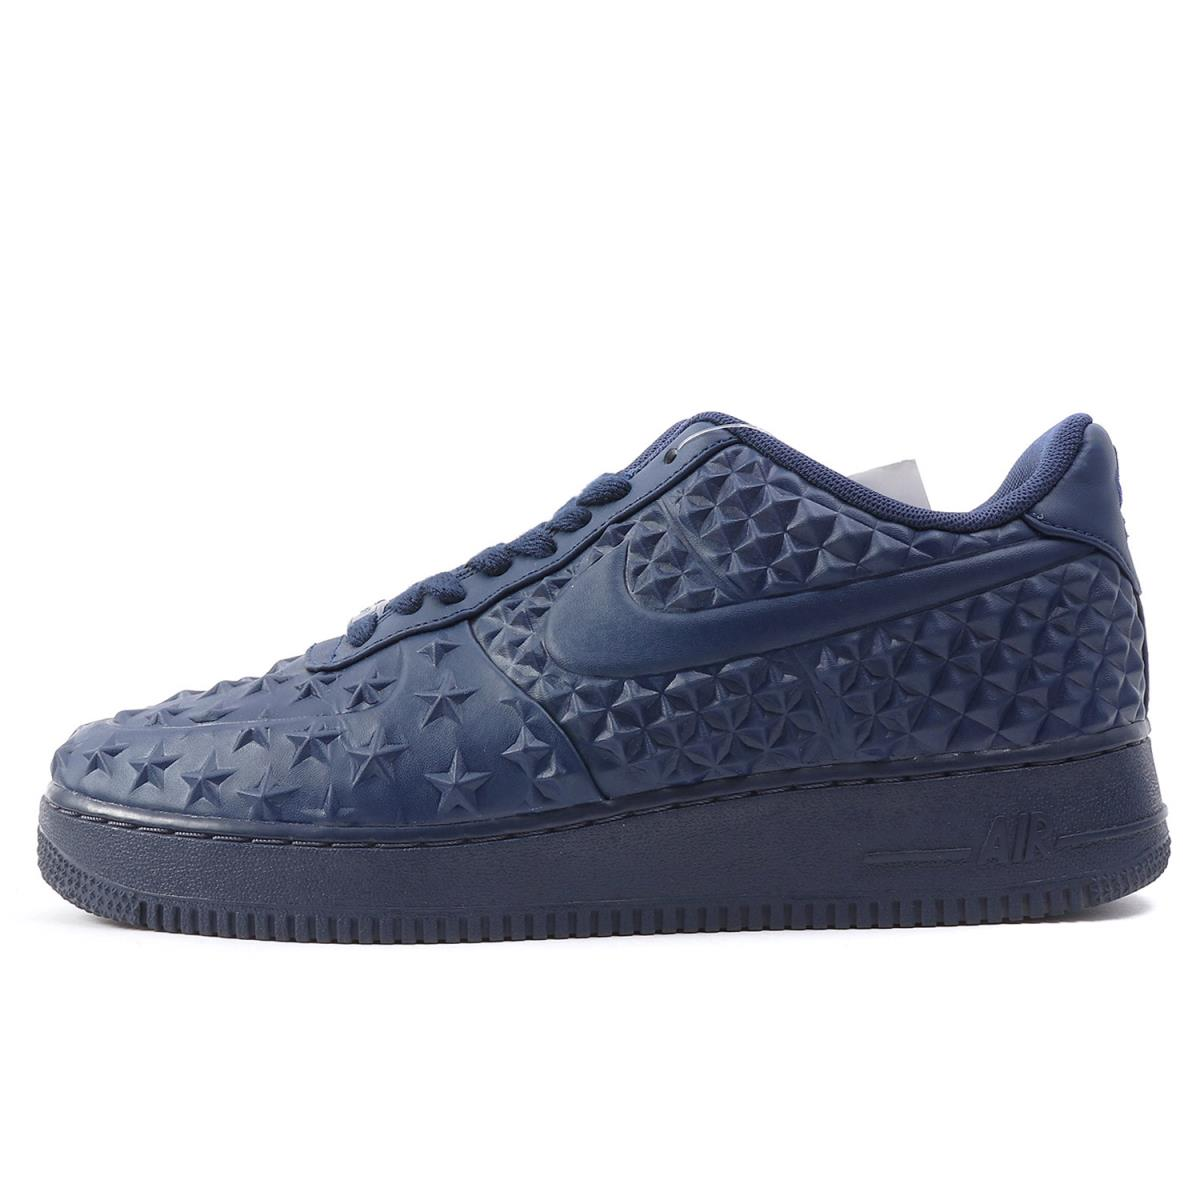 NIKE (ナイキ) AIR FORCE 1 LV8 VT INDEPENDENCE DAY (789104-400) ミッドナイトネイビー 【美品】【K2000】【中古】【あす楽☆対応可】